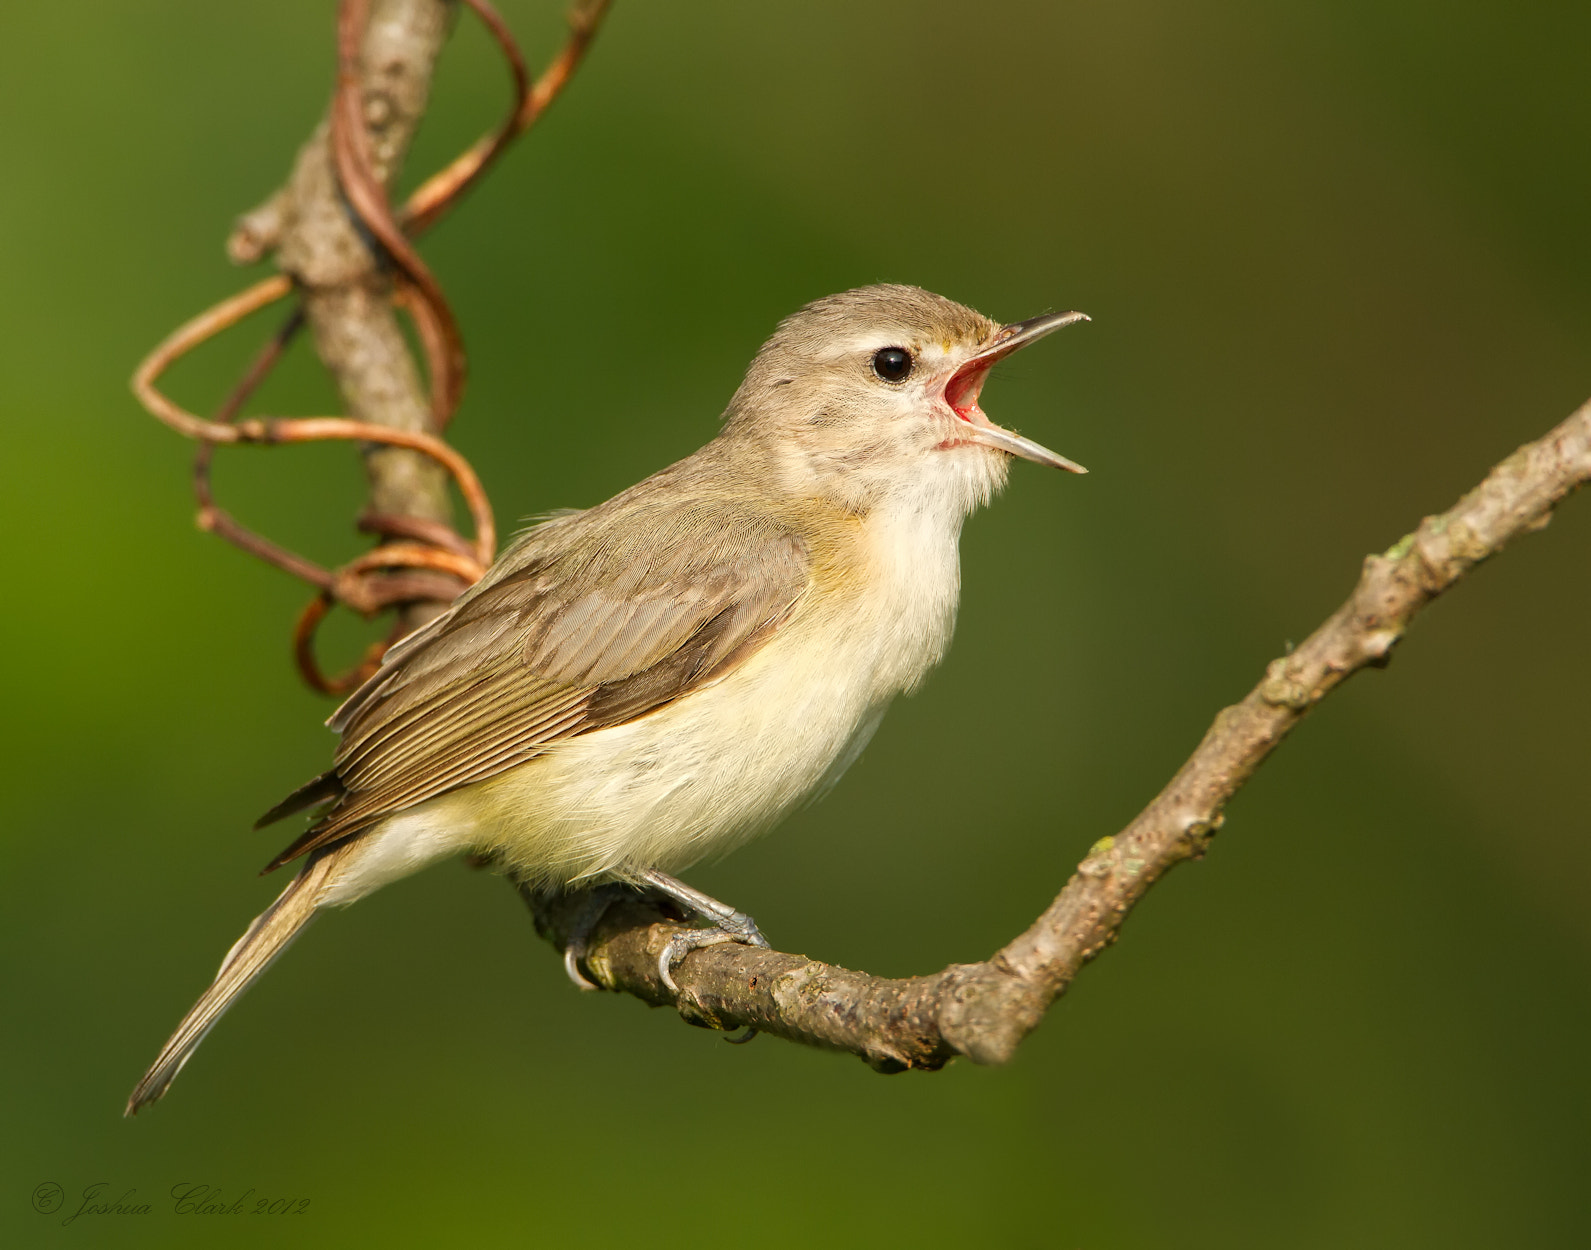 Photograph Warbling Vireo by Joshua Clark on 500px